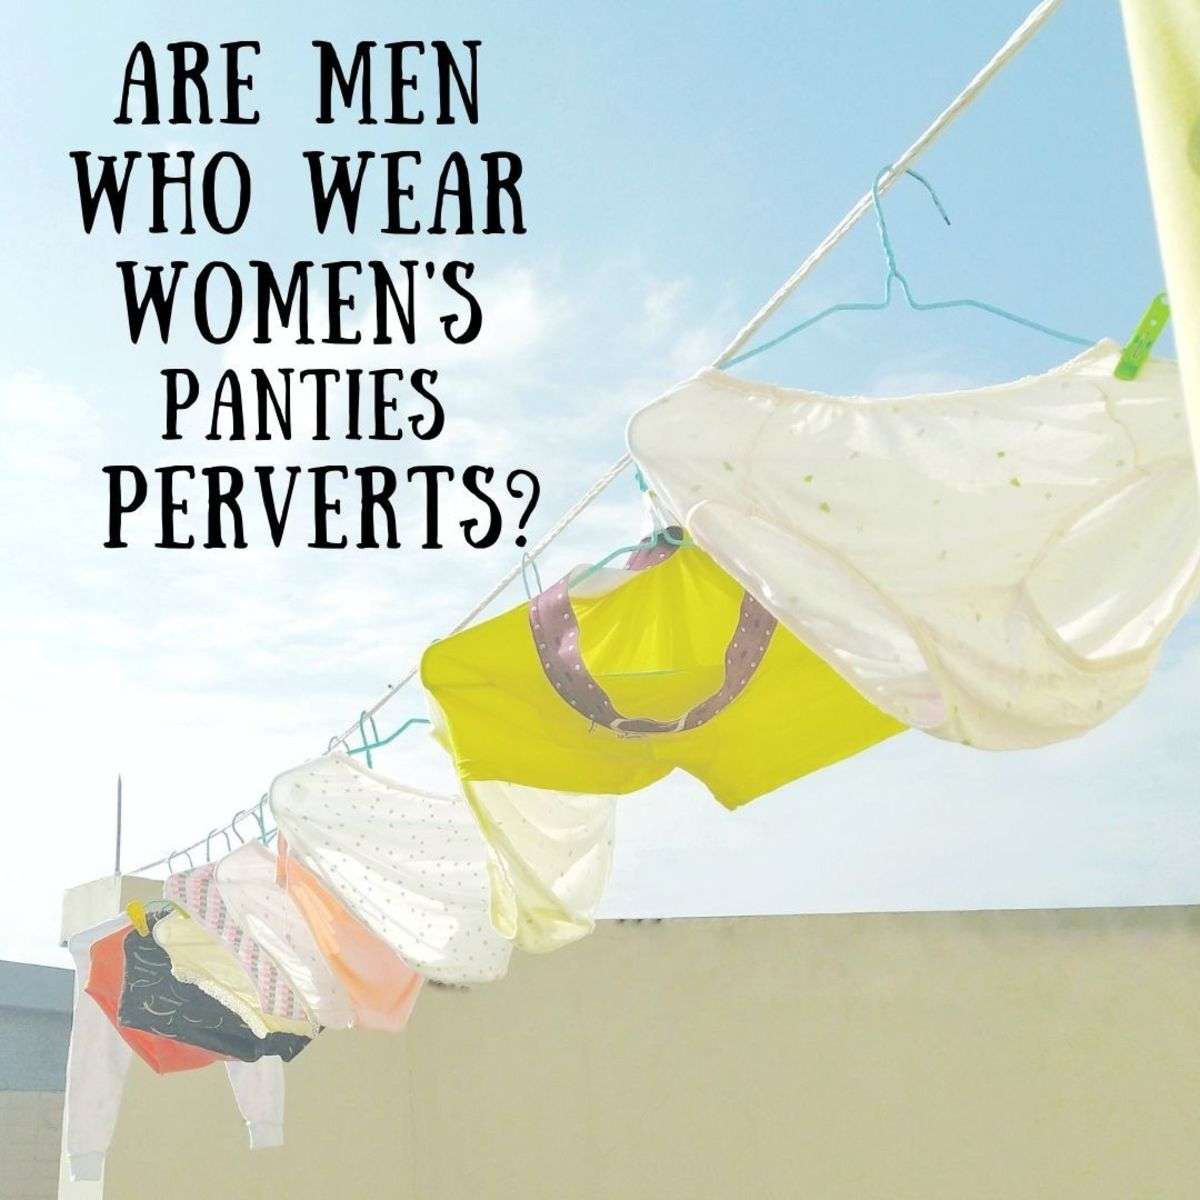 Are Men in Lingerie Perverted?